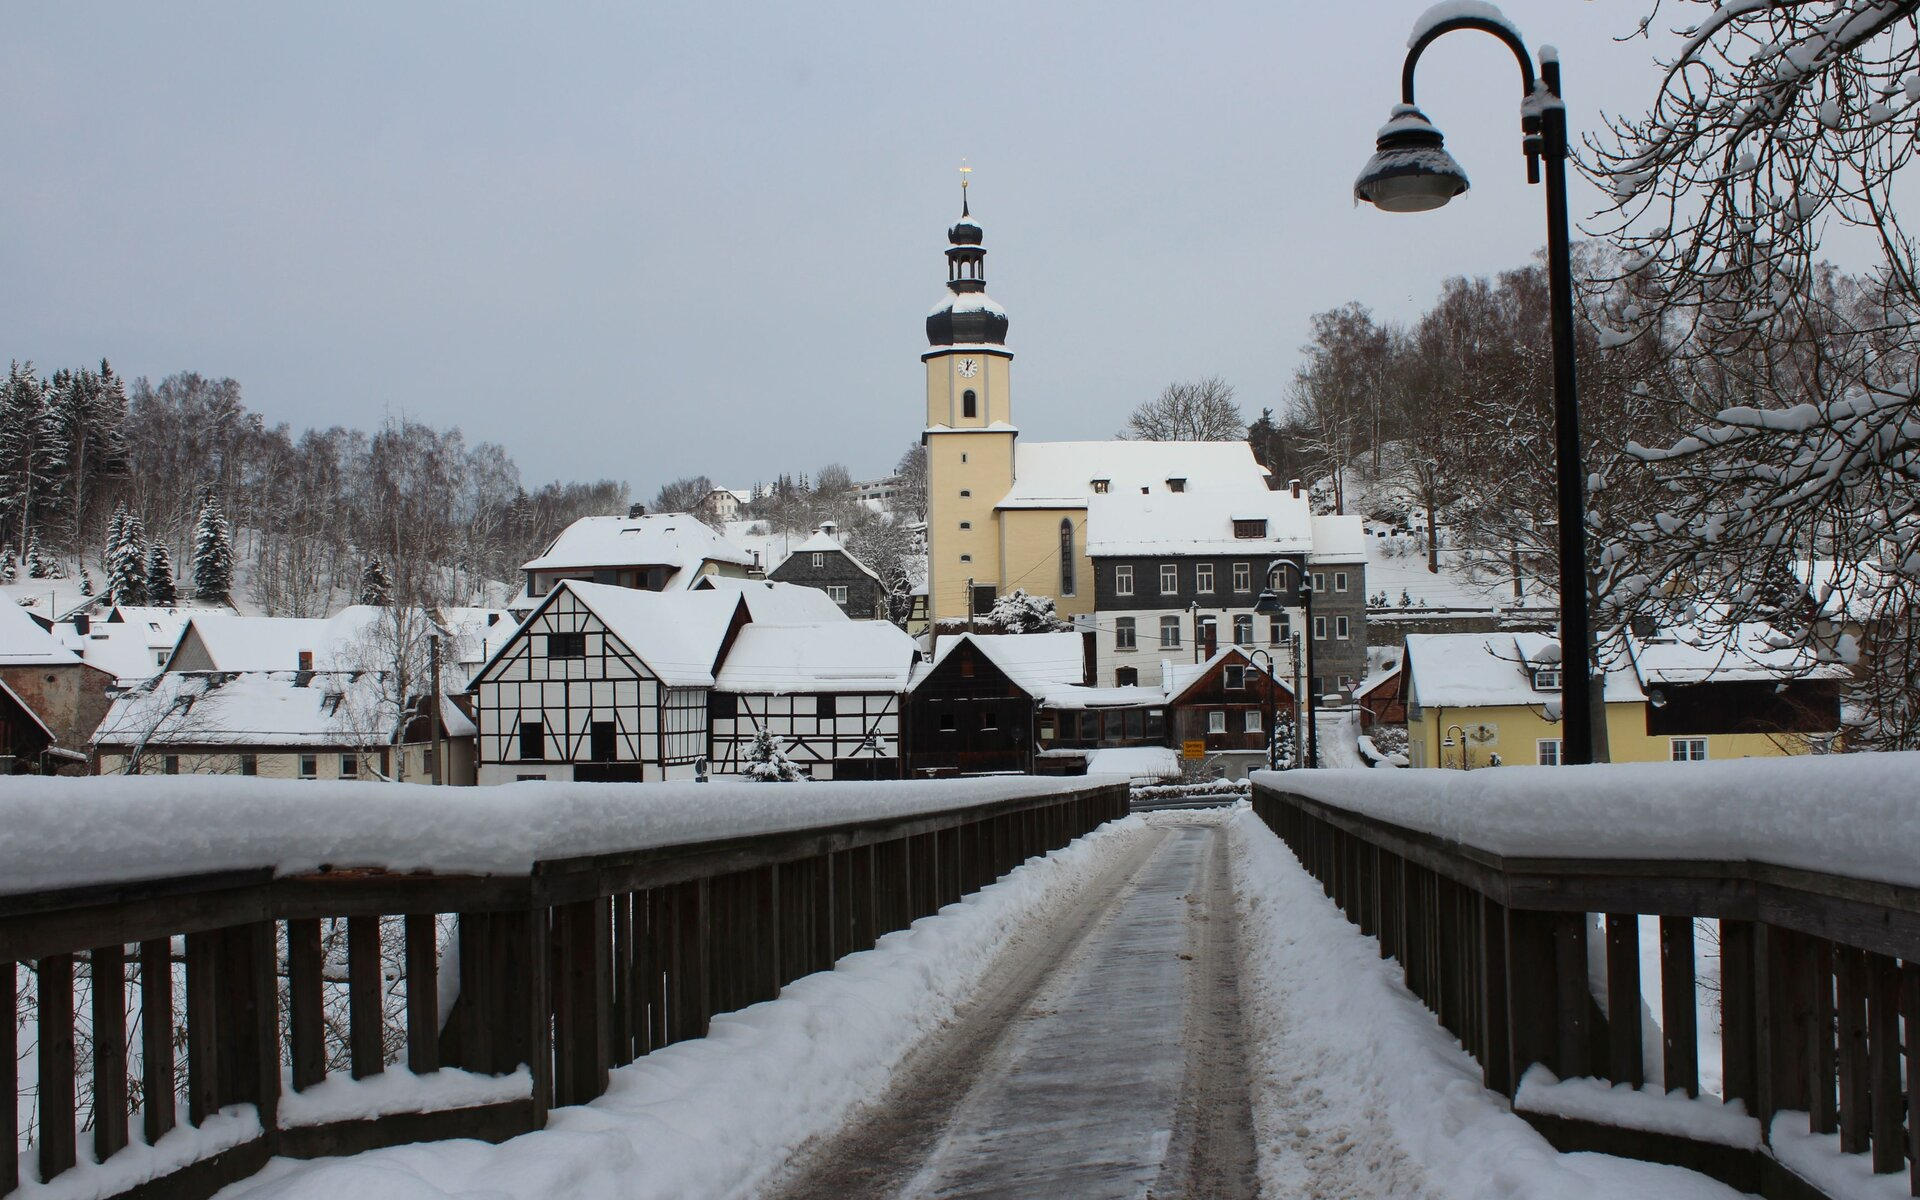 Sparnberg Winter